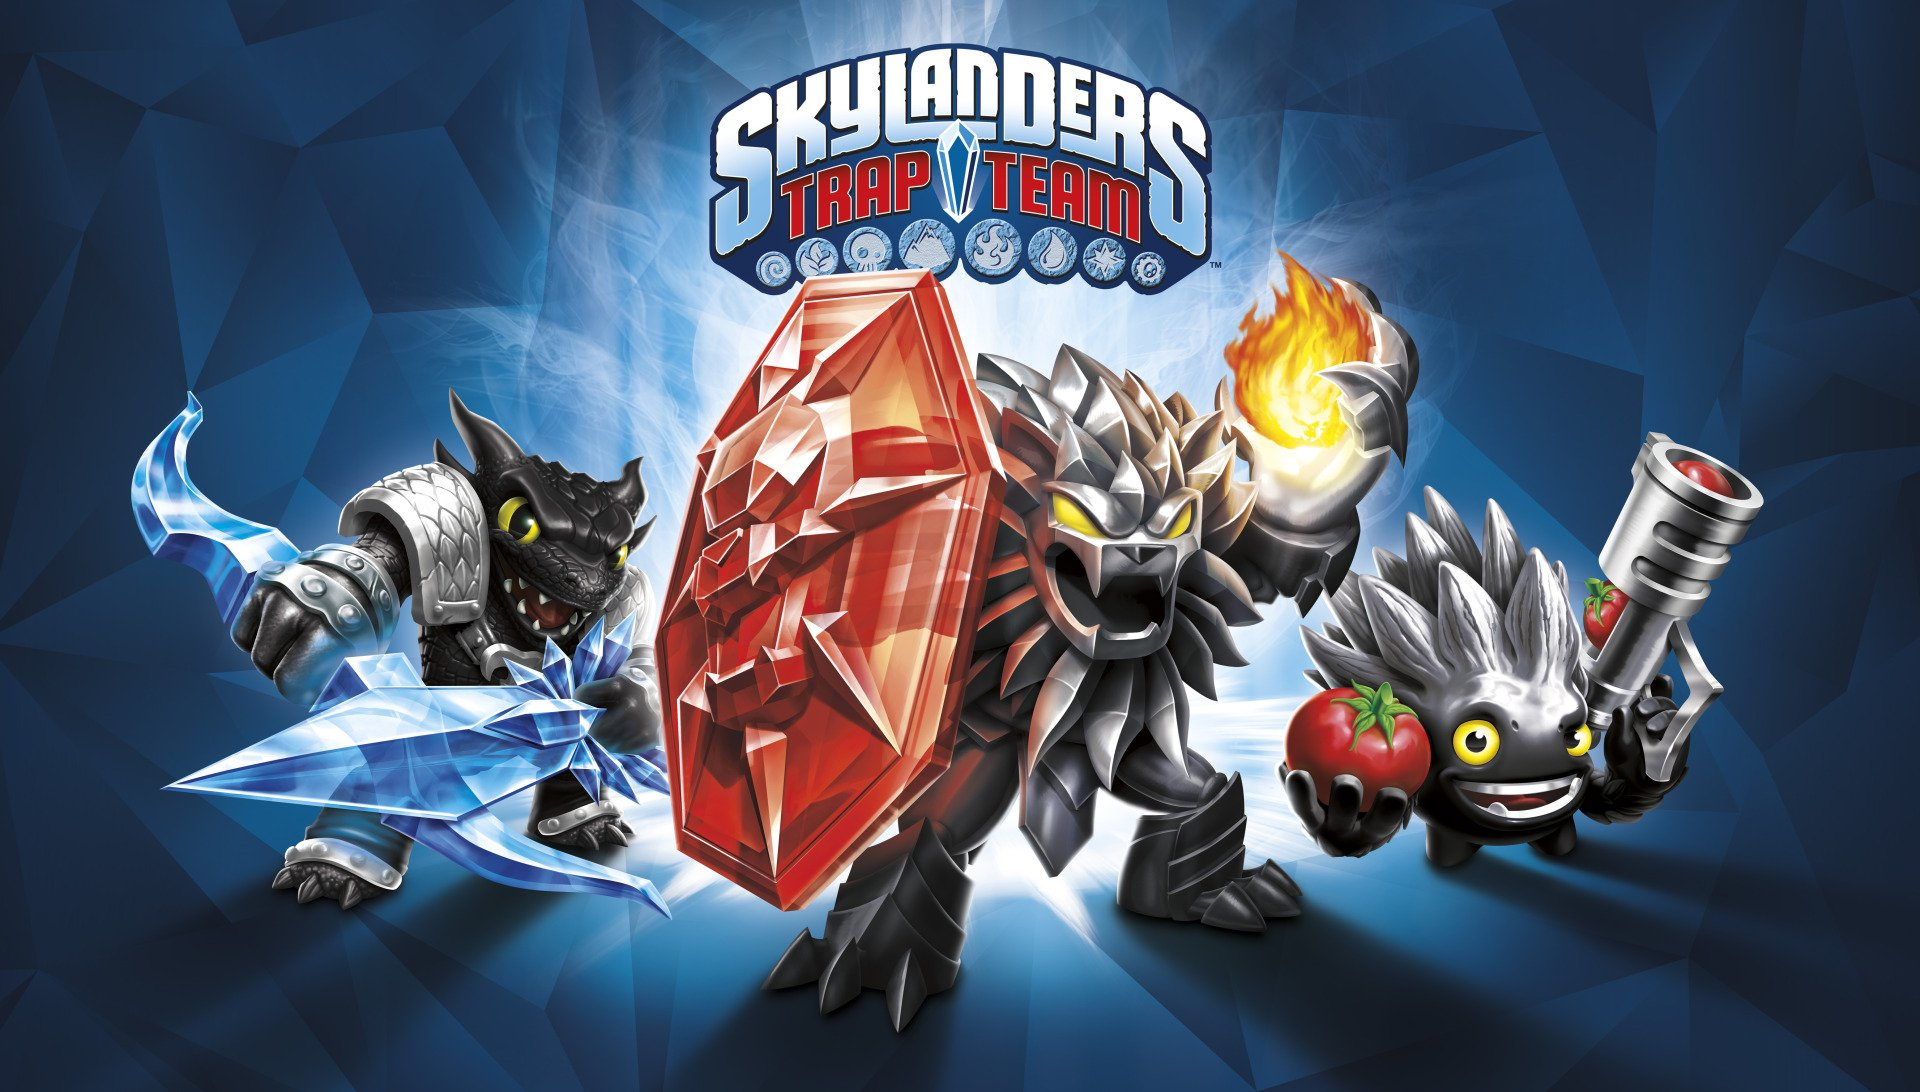 skylanders trap team wallpaper - photo #6